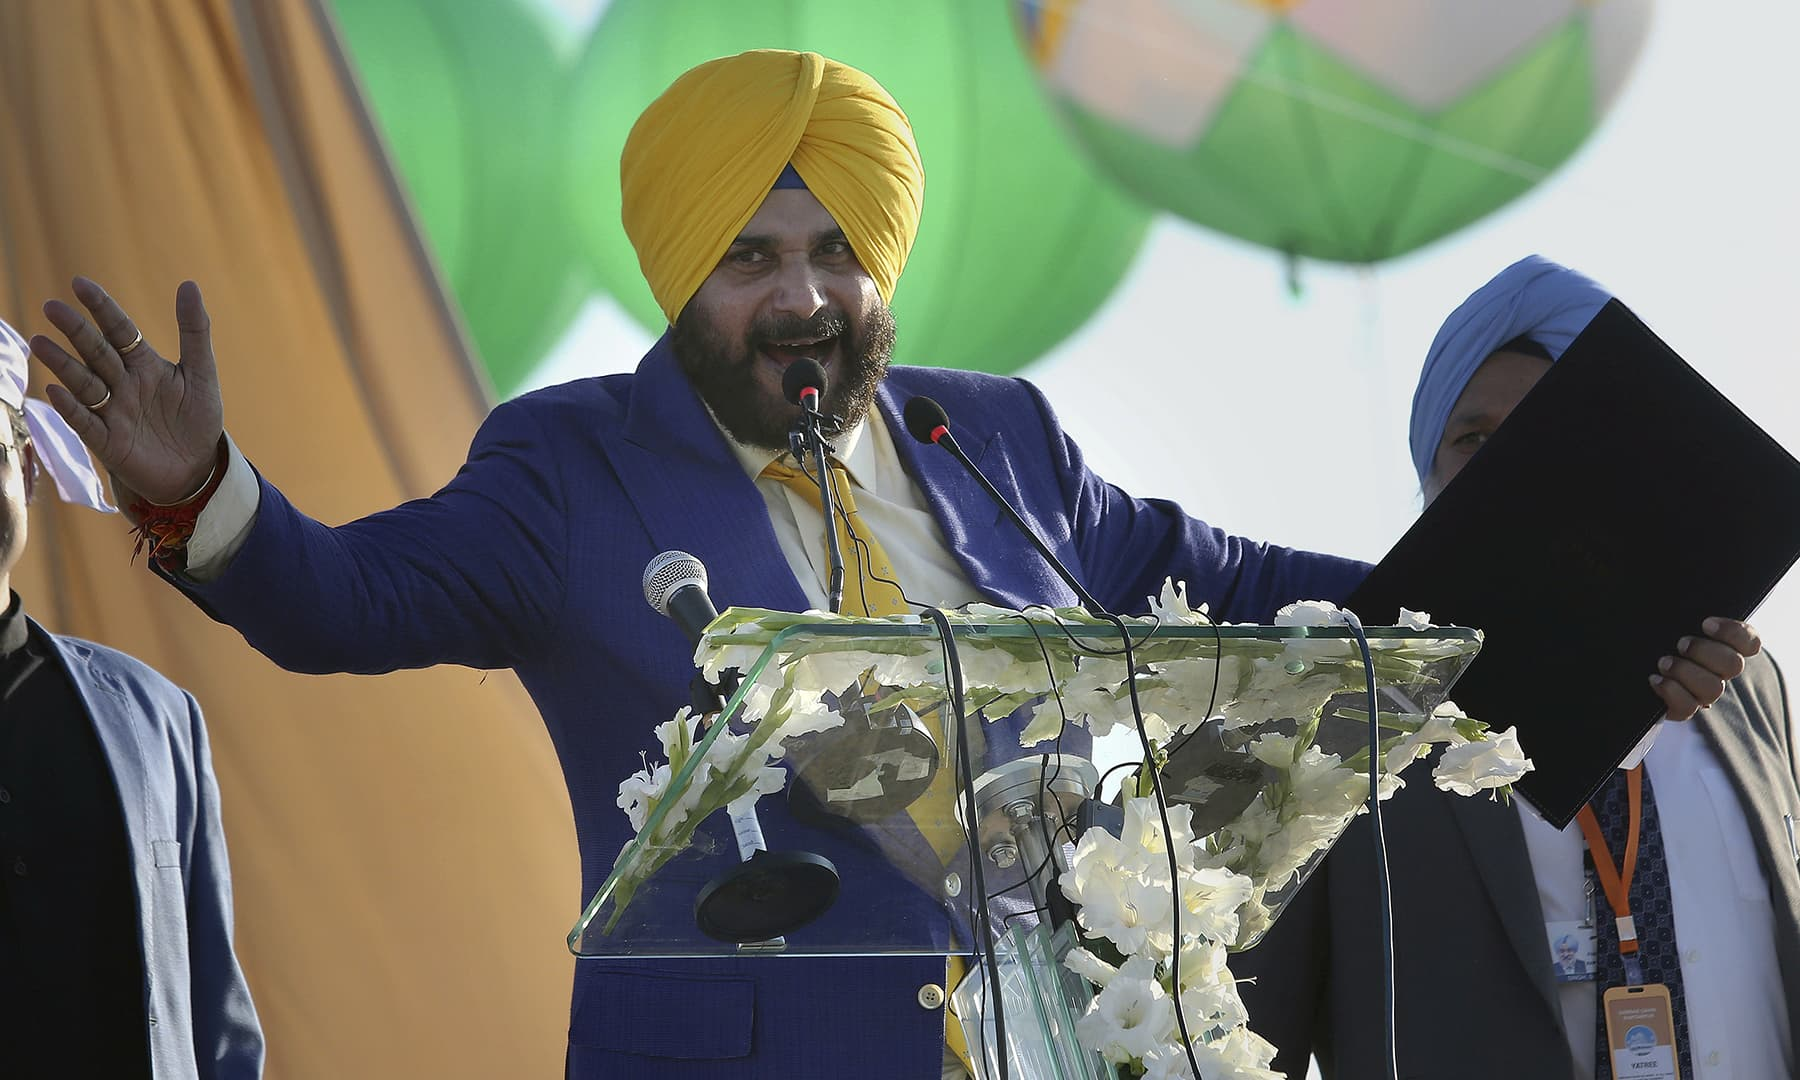 Indian cricketer-turned-politician Navjot Singh Sidhu addresses during the inauguration ceremony of Gurdwara Darbar Sahib in Kartarpur on Saturday. — AP